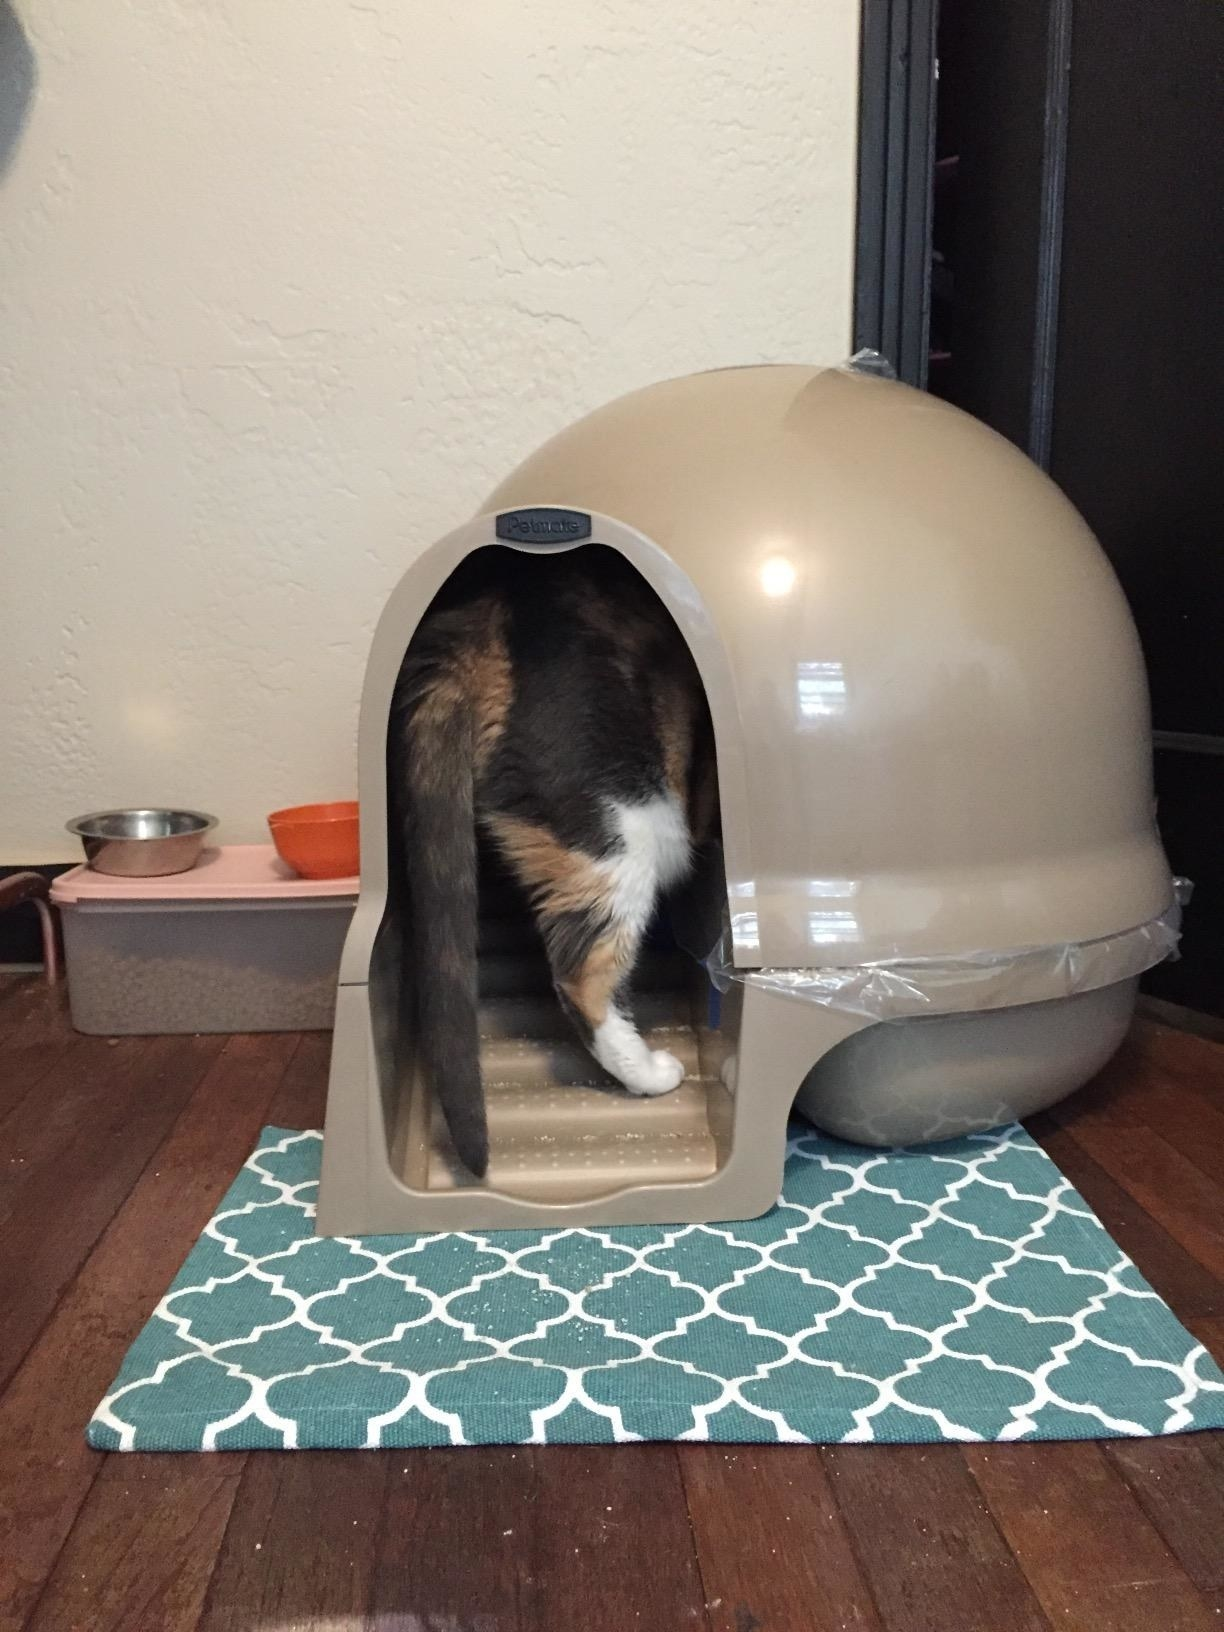 Review photo of cat using the pearl white dome litter box